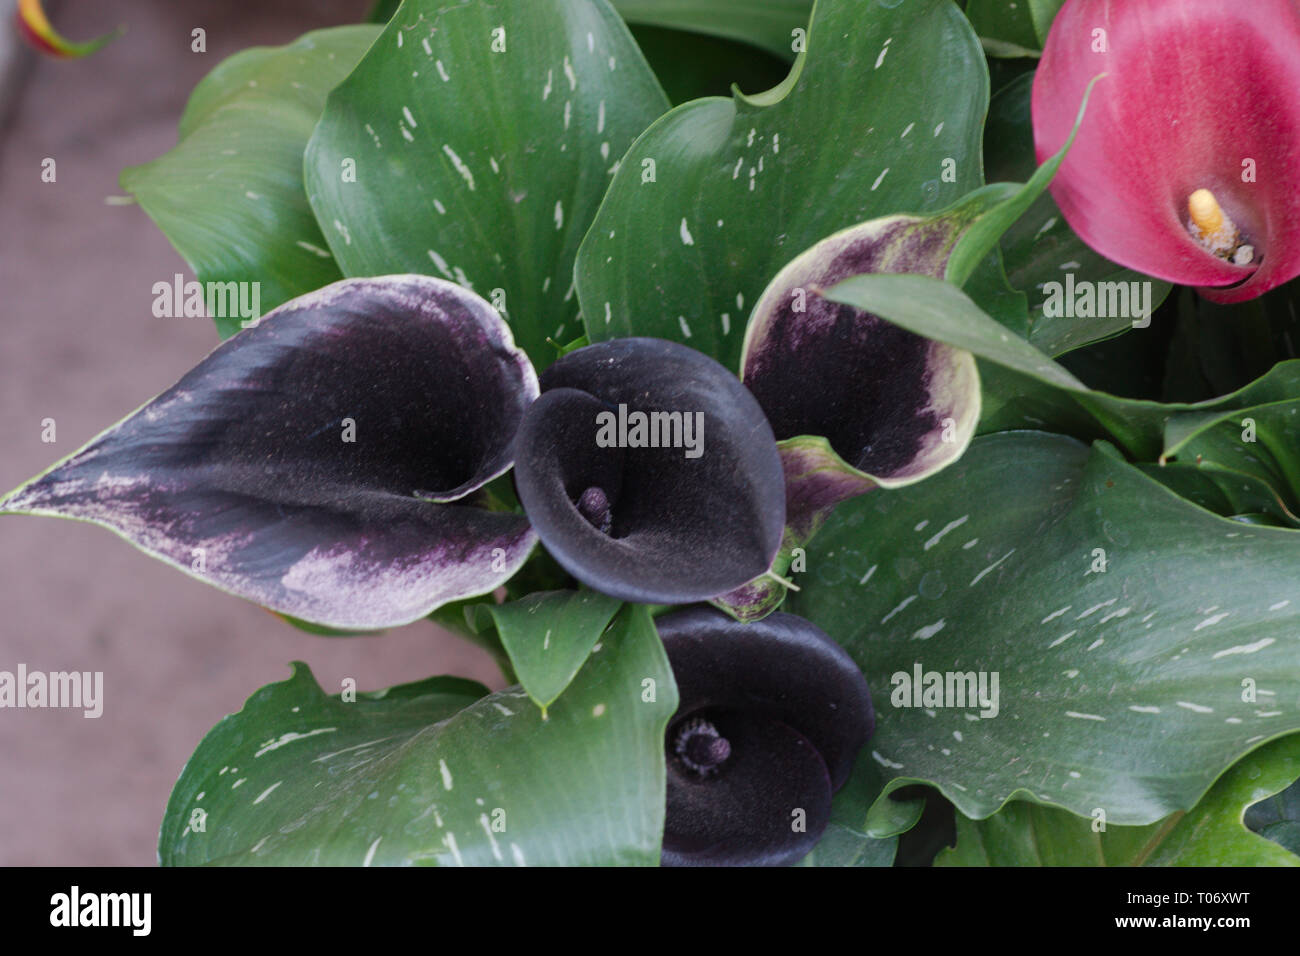 Dark Purple And One Red Calla Lilies In Field Of Green Speckled